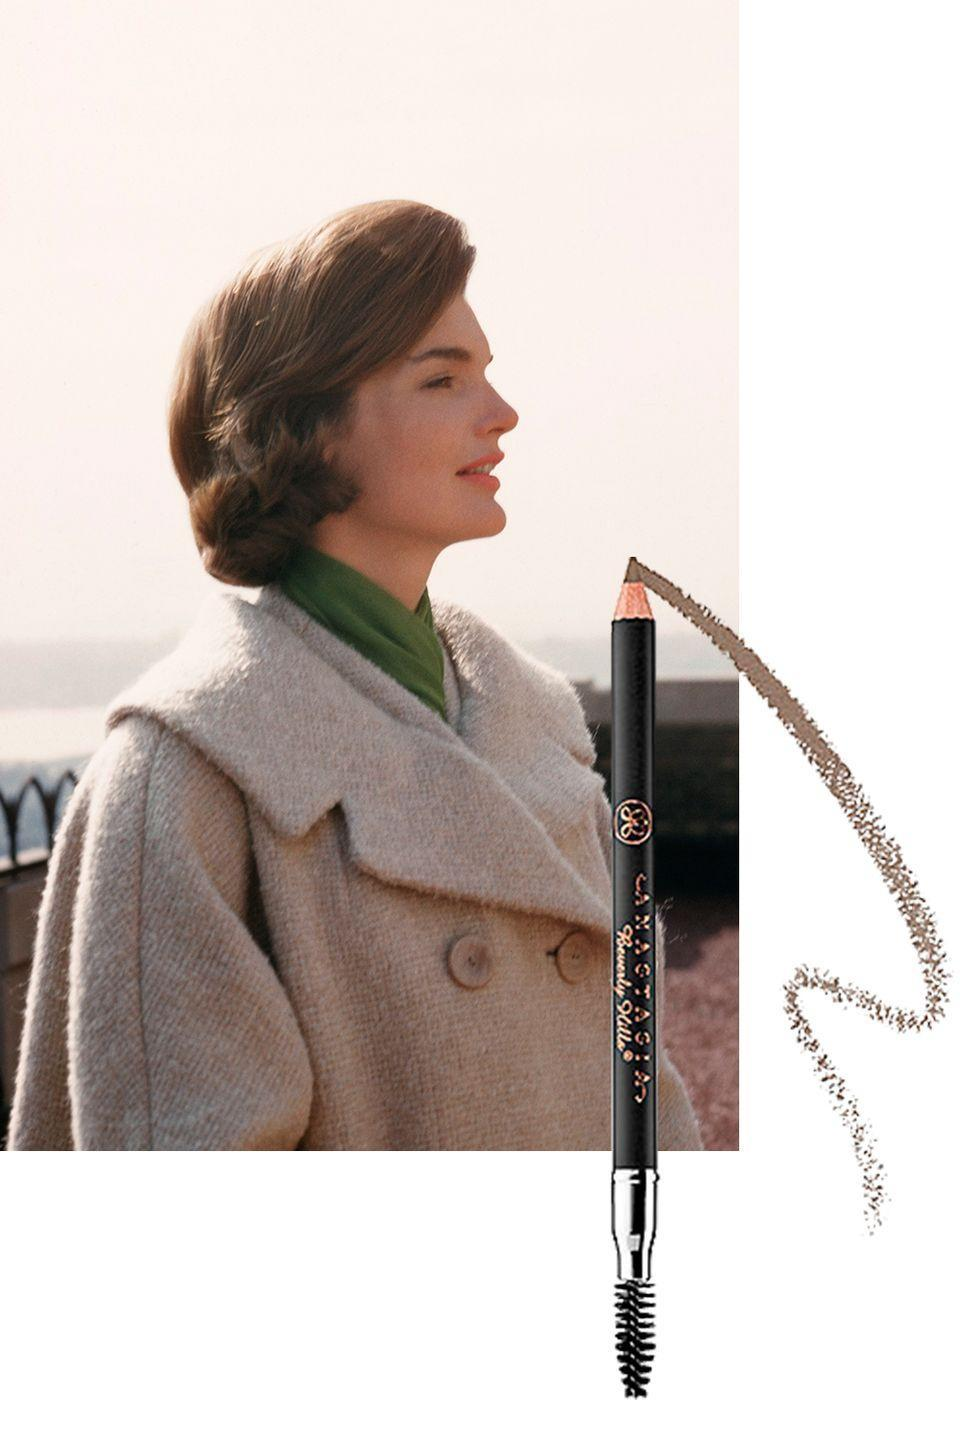 "<p><span>Long before Brooke Shields debuted in <em>Blue Lagoon</em>, Kennedy made the case for a strong brow. To steal her look, make sure your eyebrows are always filled in and blended using a pencil like <span><a href=""http://www.sephora.com/perfect-brow-pencil-P69305"" rel=""nofollow noopener"" target=""_blank"" data-ylk=""slk:this one from Anastasia Beverly Hills"" class=""link rapid-noclick-resp"">this one from Anastasia Beverly Hills</a></span><span>. Eyebrows should also be sharply arched and well-groomed. (Kennedy was a lifelong perfectionist.)</span></span></p><p><a class=""link rapid-noclick-resp"" href=""https://go.redirectingat.com?id=74968X1596630&url=https%3A%2F%2Fwww.sephora.com%2Fproduct%2Fperfect-brow-pencil-P69305&sref=https%3A%2F%2Fwww.goodhousekeeping.com%2Flife%2Fentertainment%2Fg33481959%2Fjackie-kennedy-beauty-tips%2F"" rel=""nofollow noopener"" target=""_blank"" data-ylk=""slk:SHOP NOW"">SHOP NOW</a> <em>Anastasia Beverly Hills Perfect Brown Pencil, $23</em></p>"